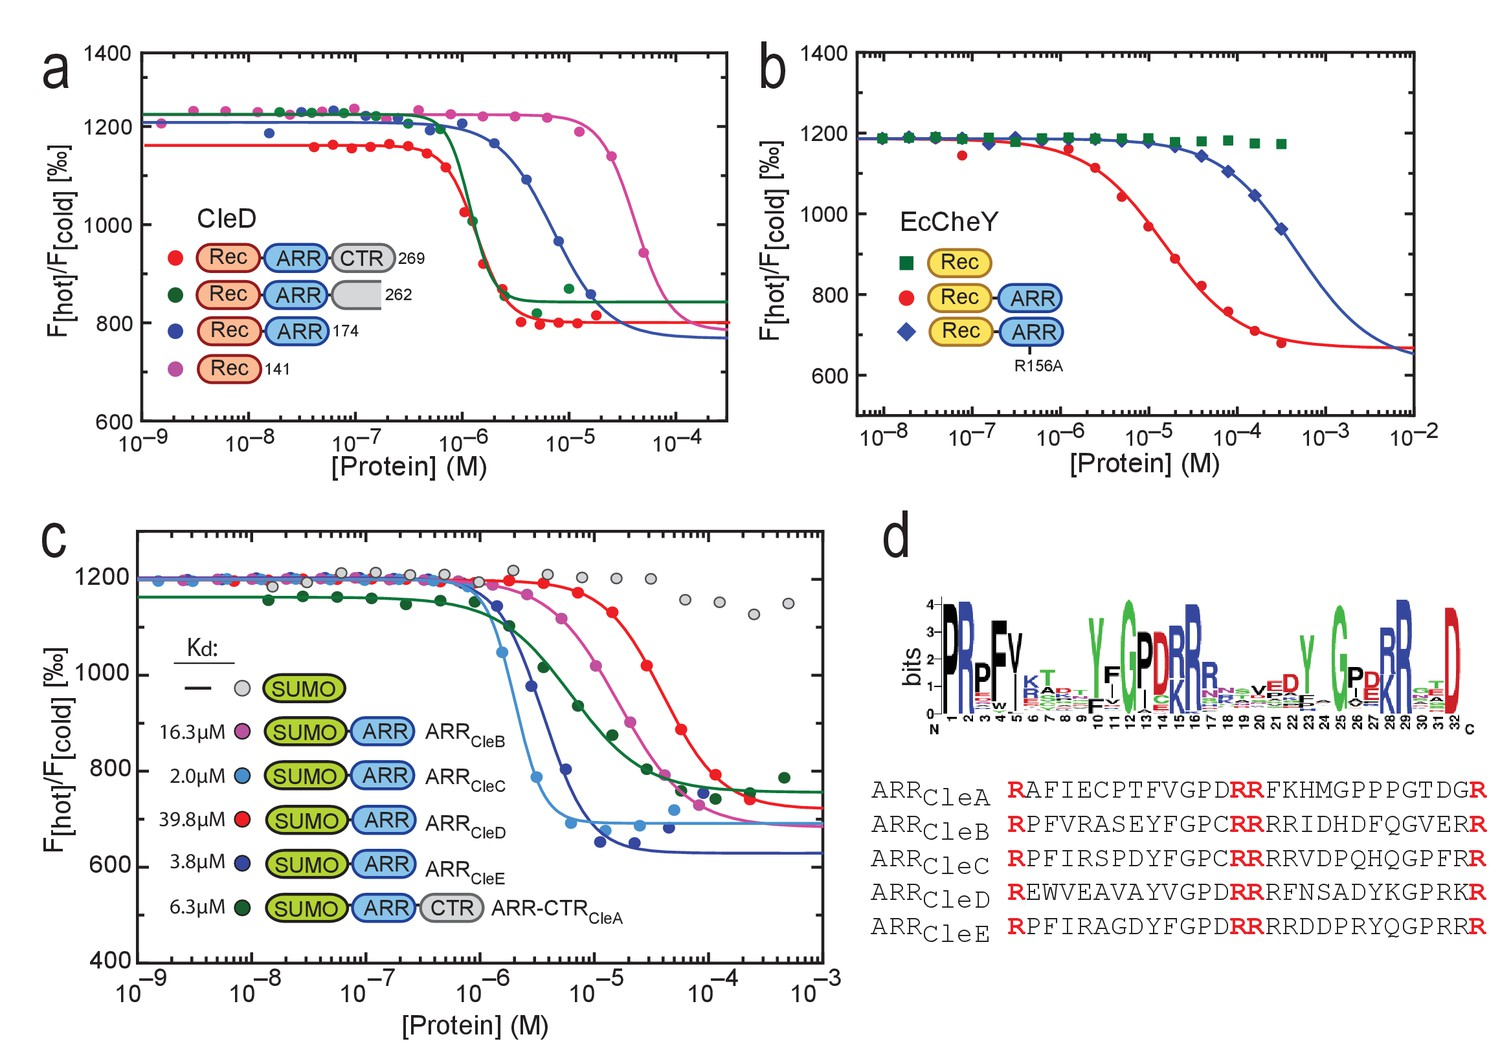 Cyclic Di Gmp Differentially Tunes A Bacterial Flagellar Motor Relay Terminal 3 Cdg C Binds To Arg Rich Peptides